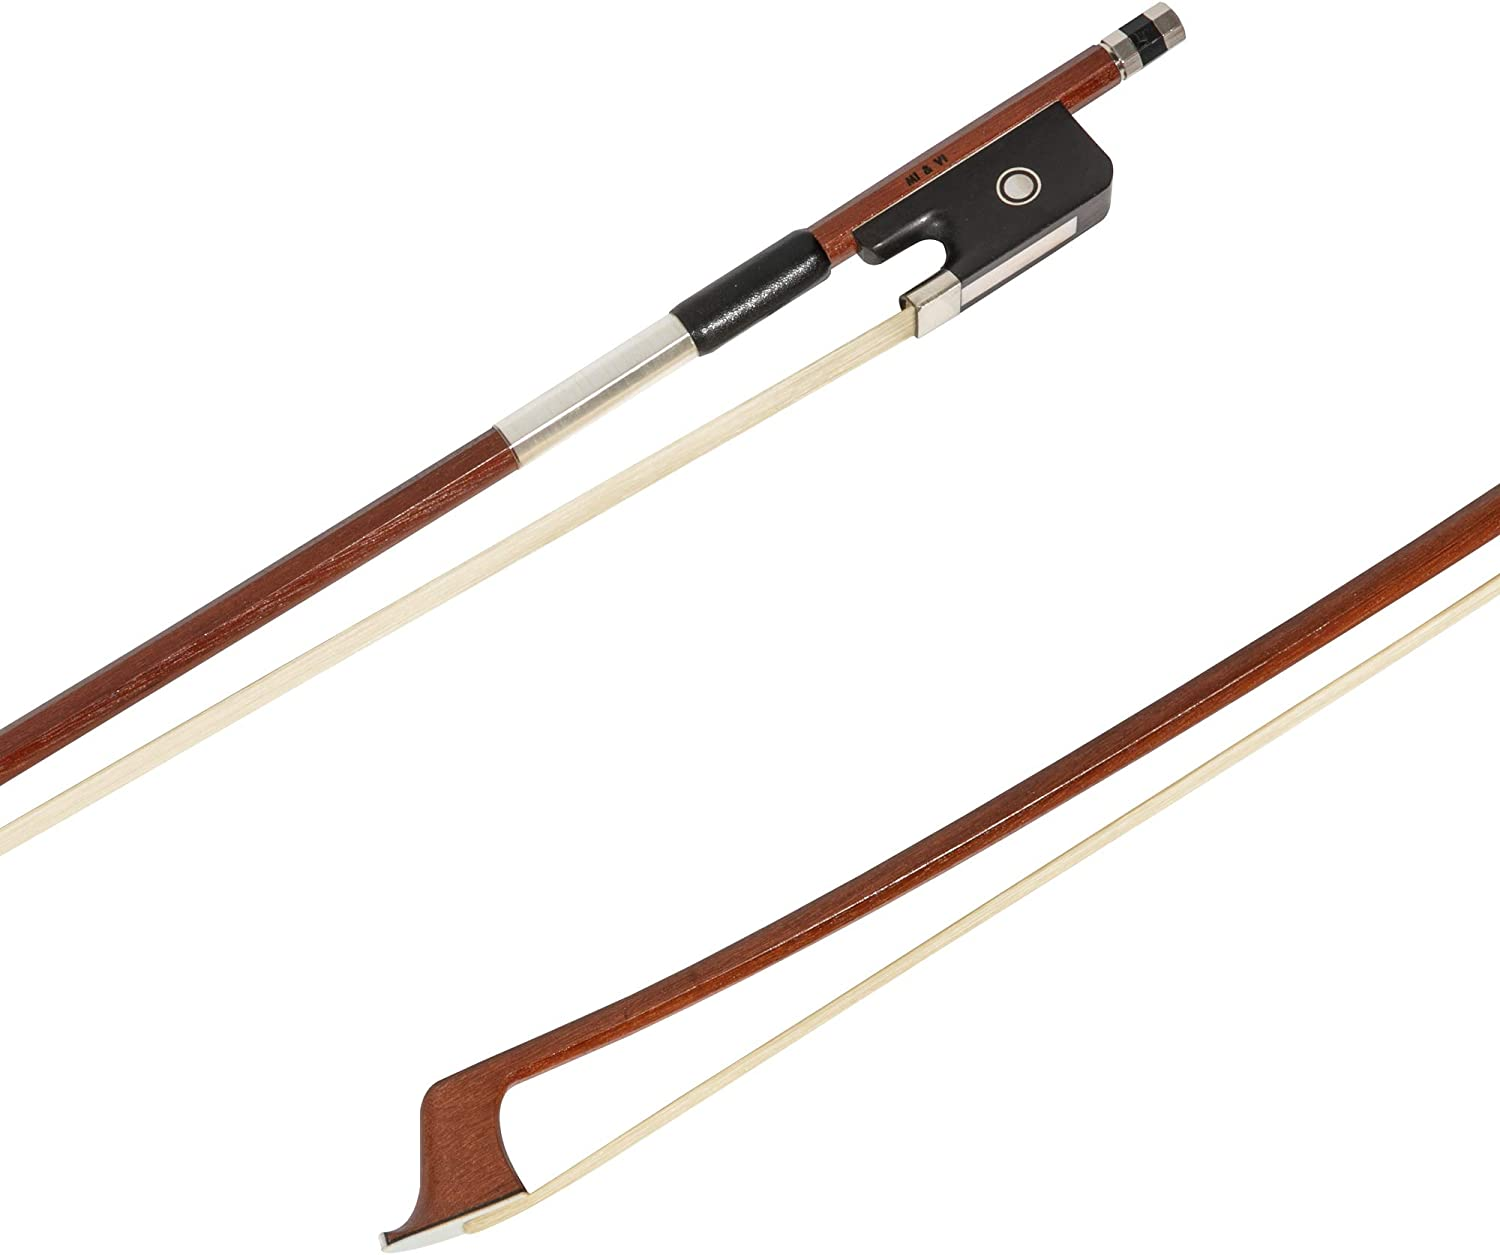 MI&VI Brazilwood Cello Bow (3/4 Size) with Ebony Frog and Octagonal Silver Mount